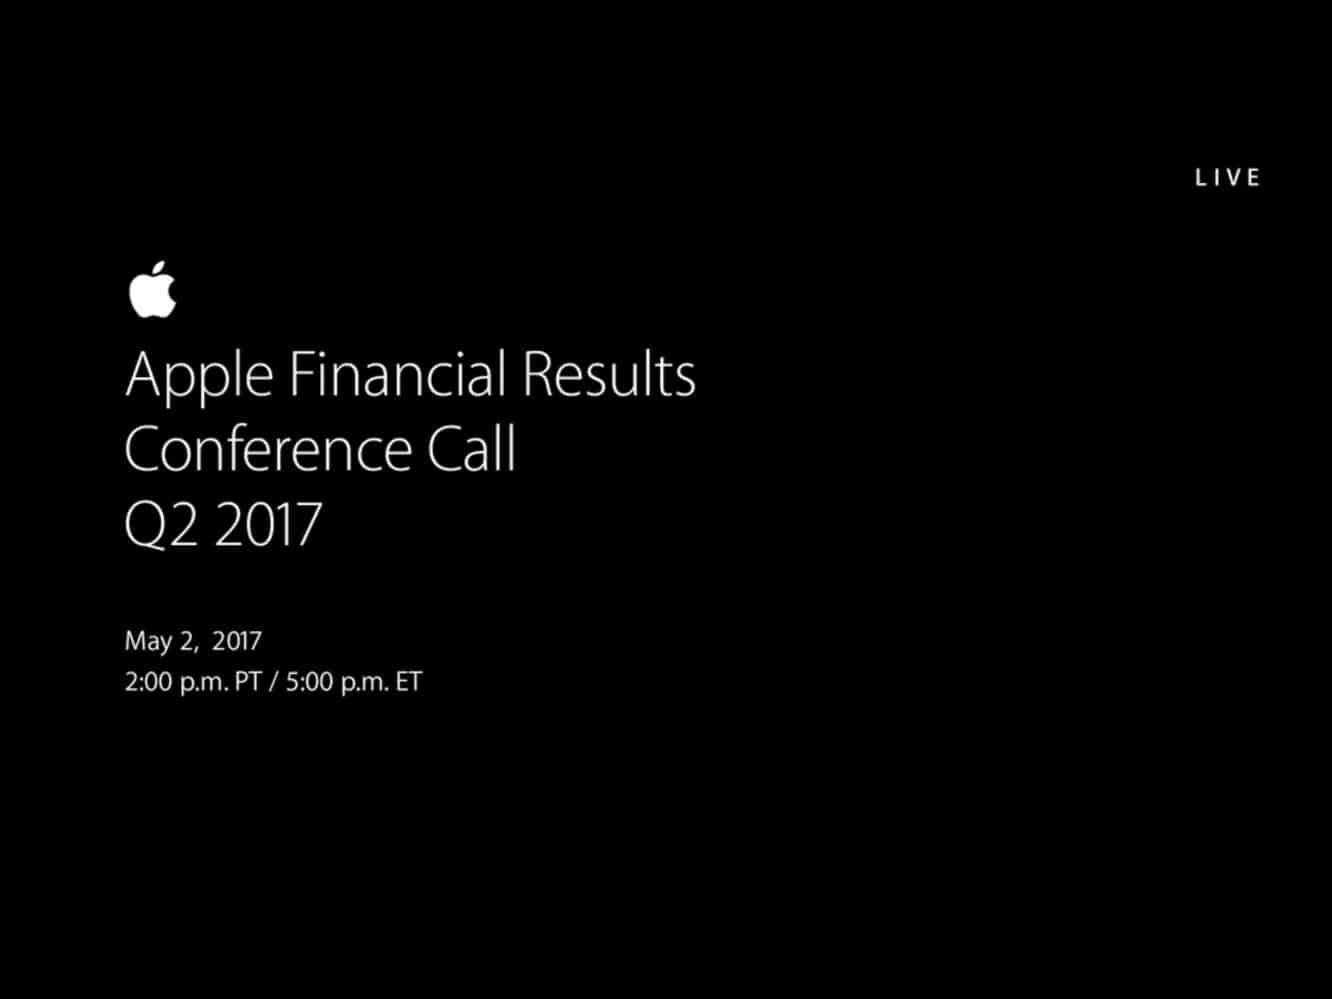 Notes from Apple's Q2 2017 earnings call